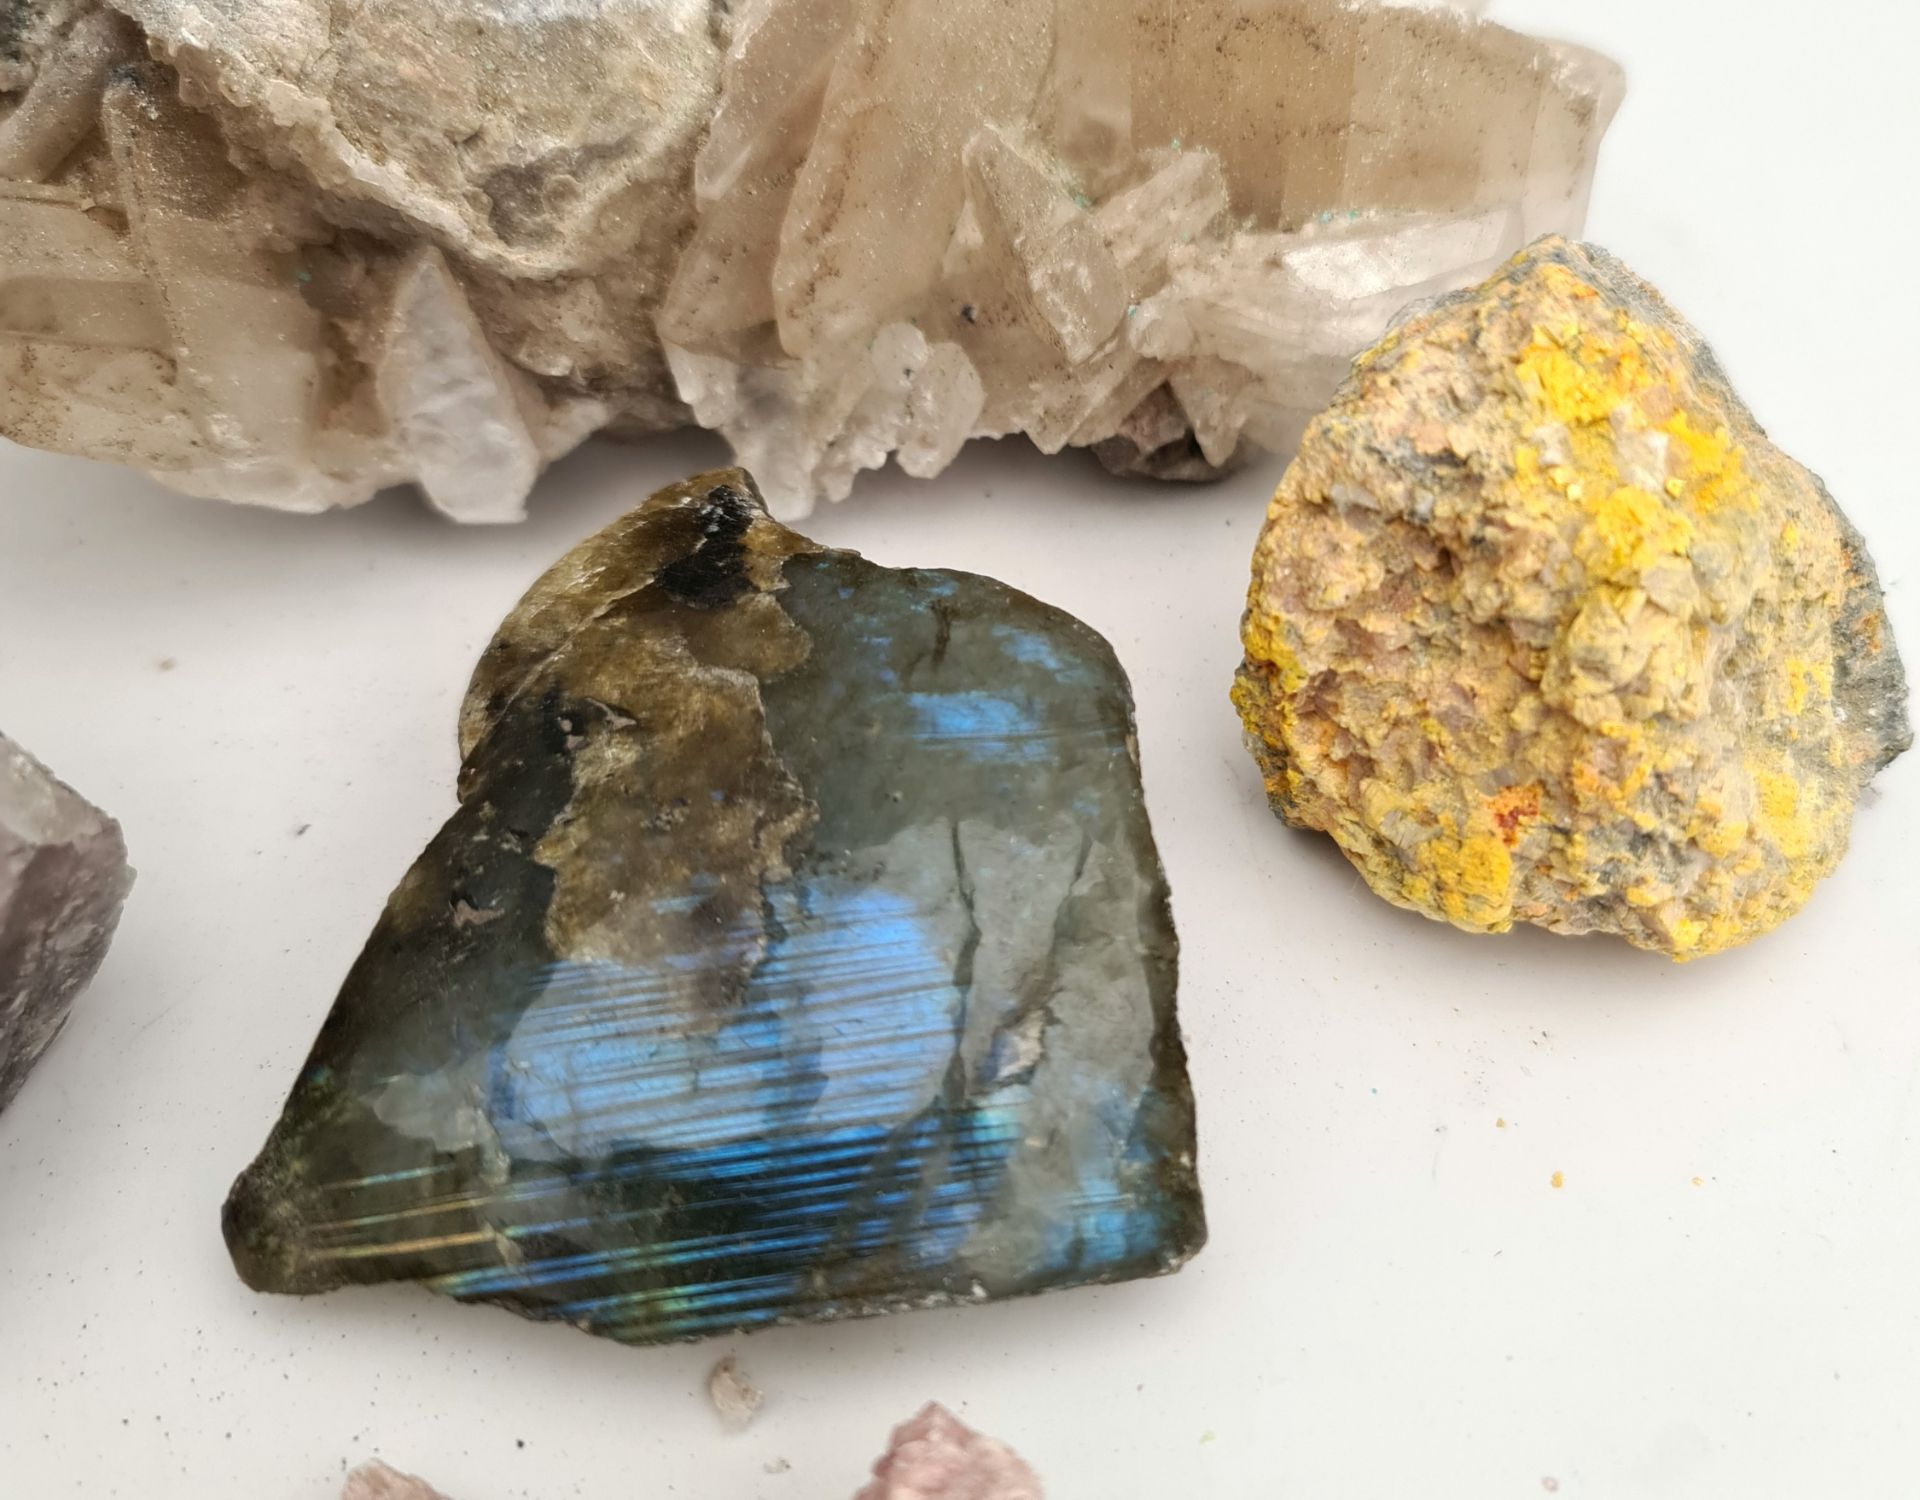 Collectable 5 x Geological Rock Samples - Image 2 of 3